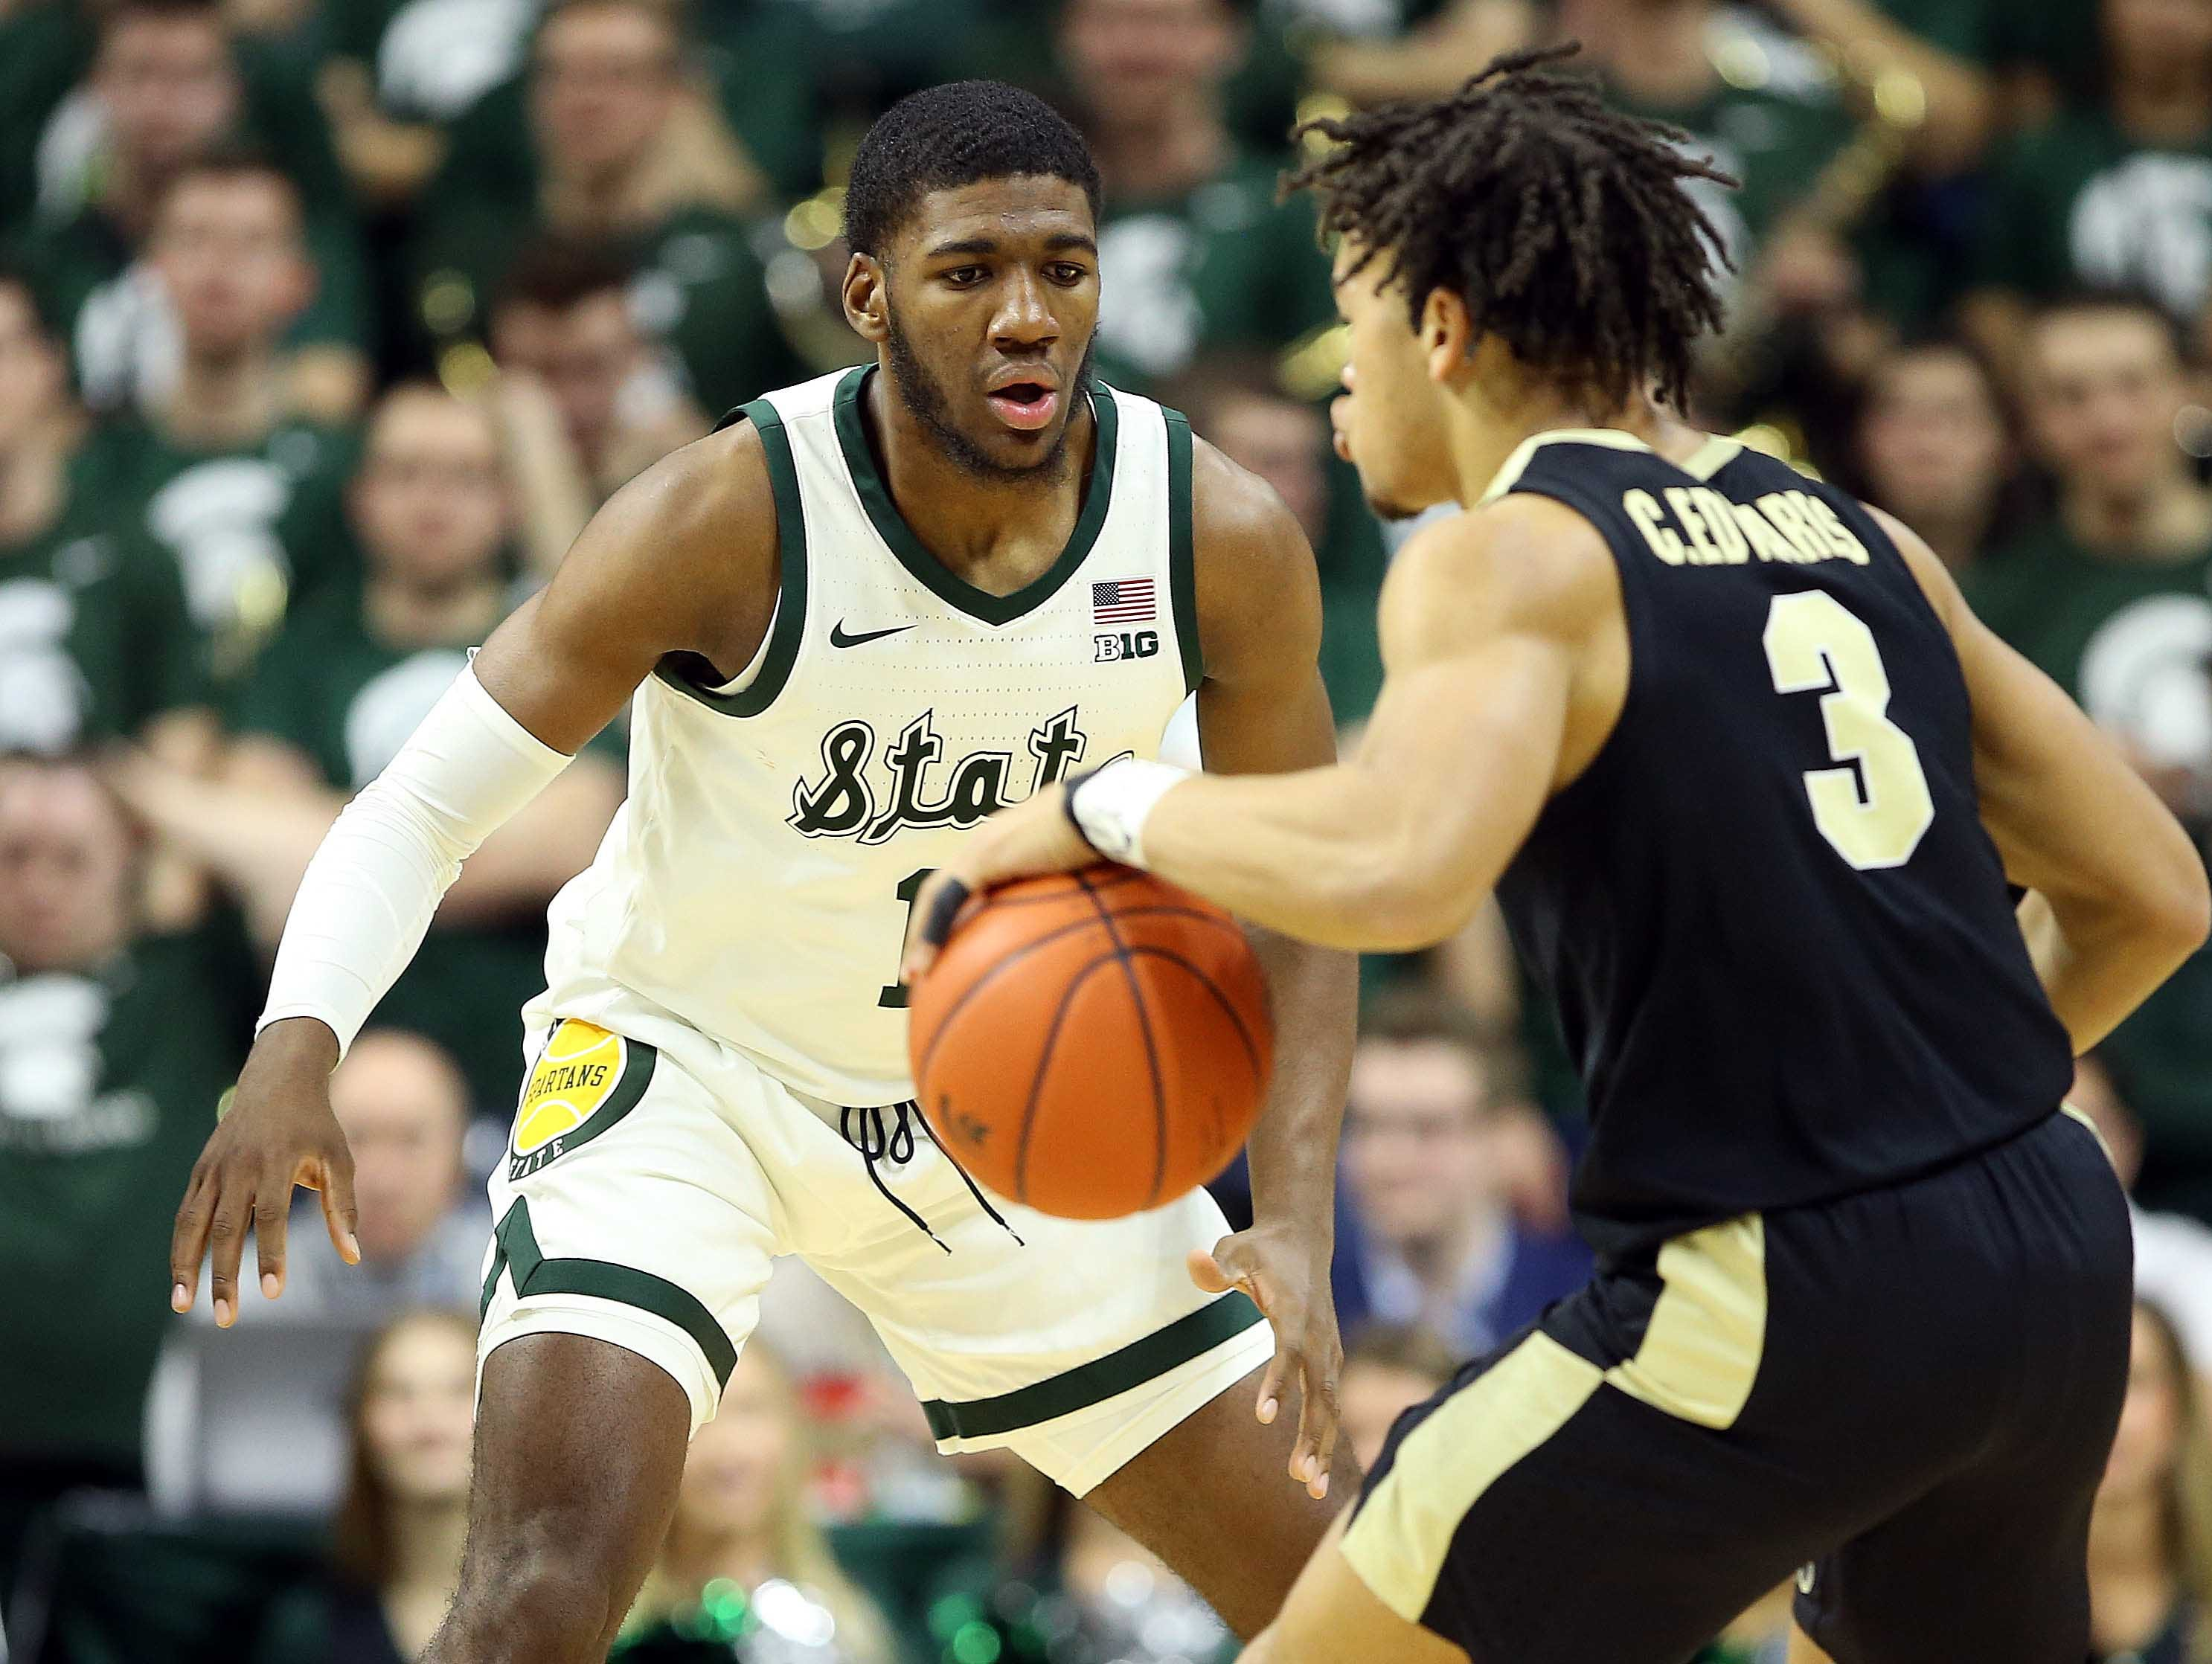 Jan 8, 2019; East Lansing, MI, USA; Purdue Boilermakers guard Carsen Edwards (3) is defended by Michigan State Spartans forward Aaron Henry (11) during the first half of a game at the Breslin Center. Mandatory Credit: Mike Carter-USA TODAY Sports